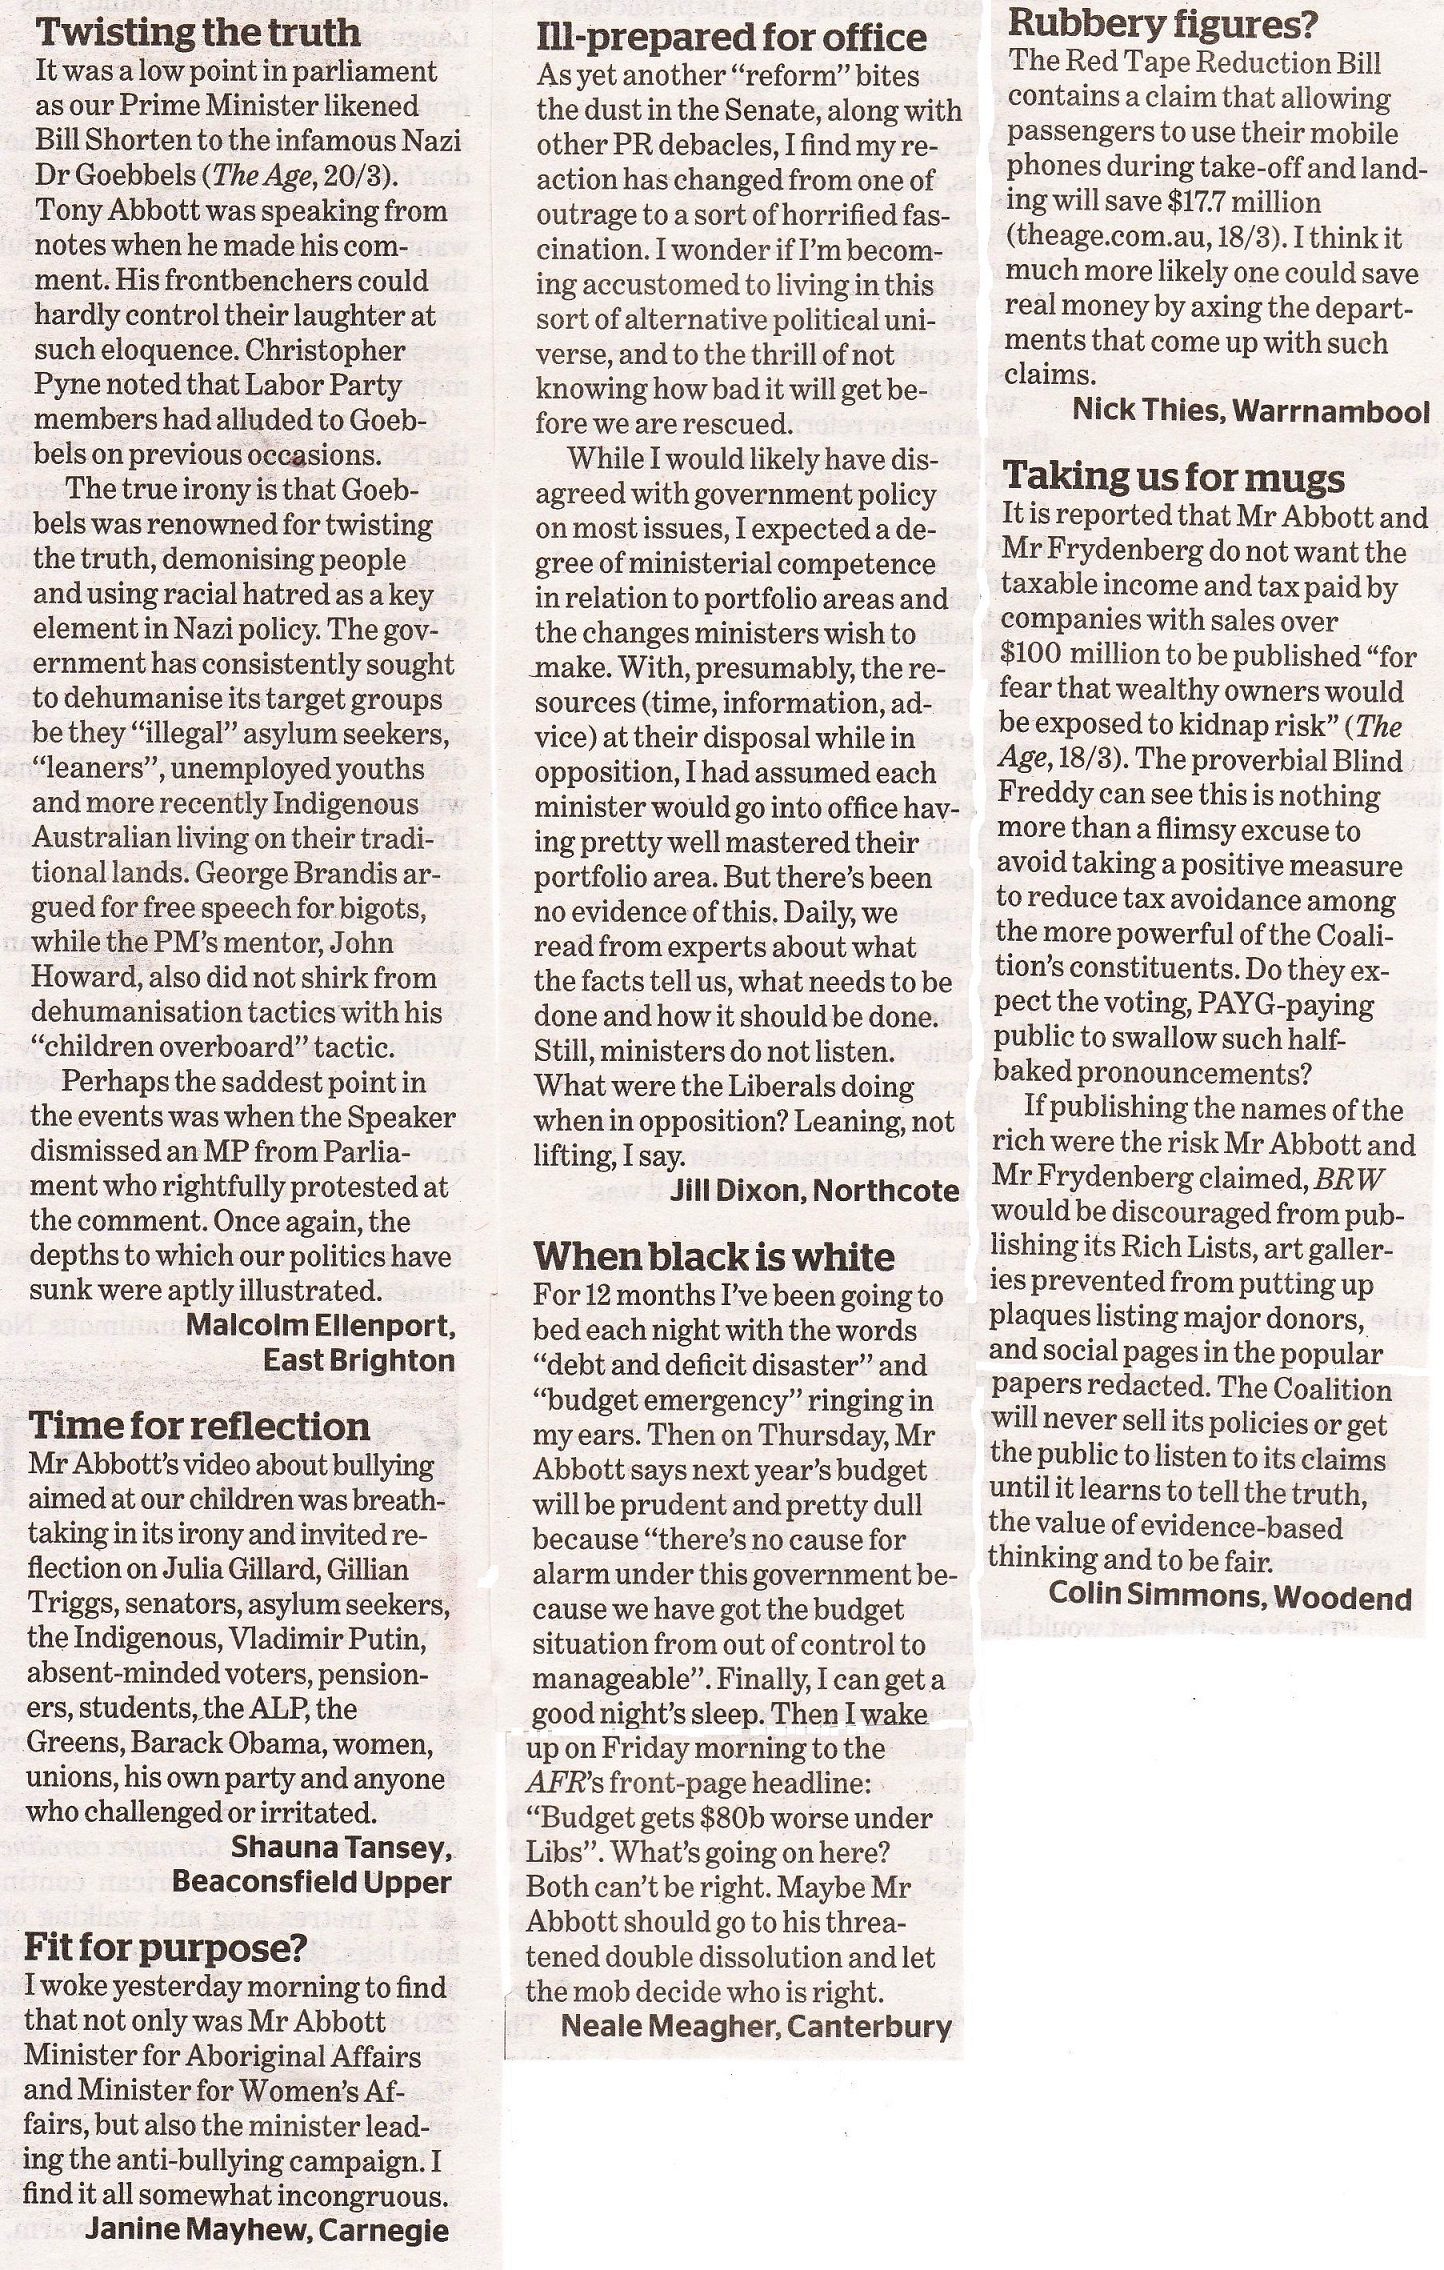 AGE letters 21-3-15